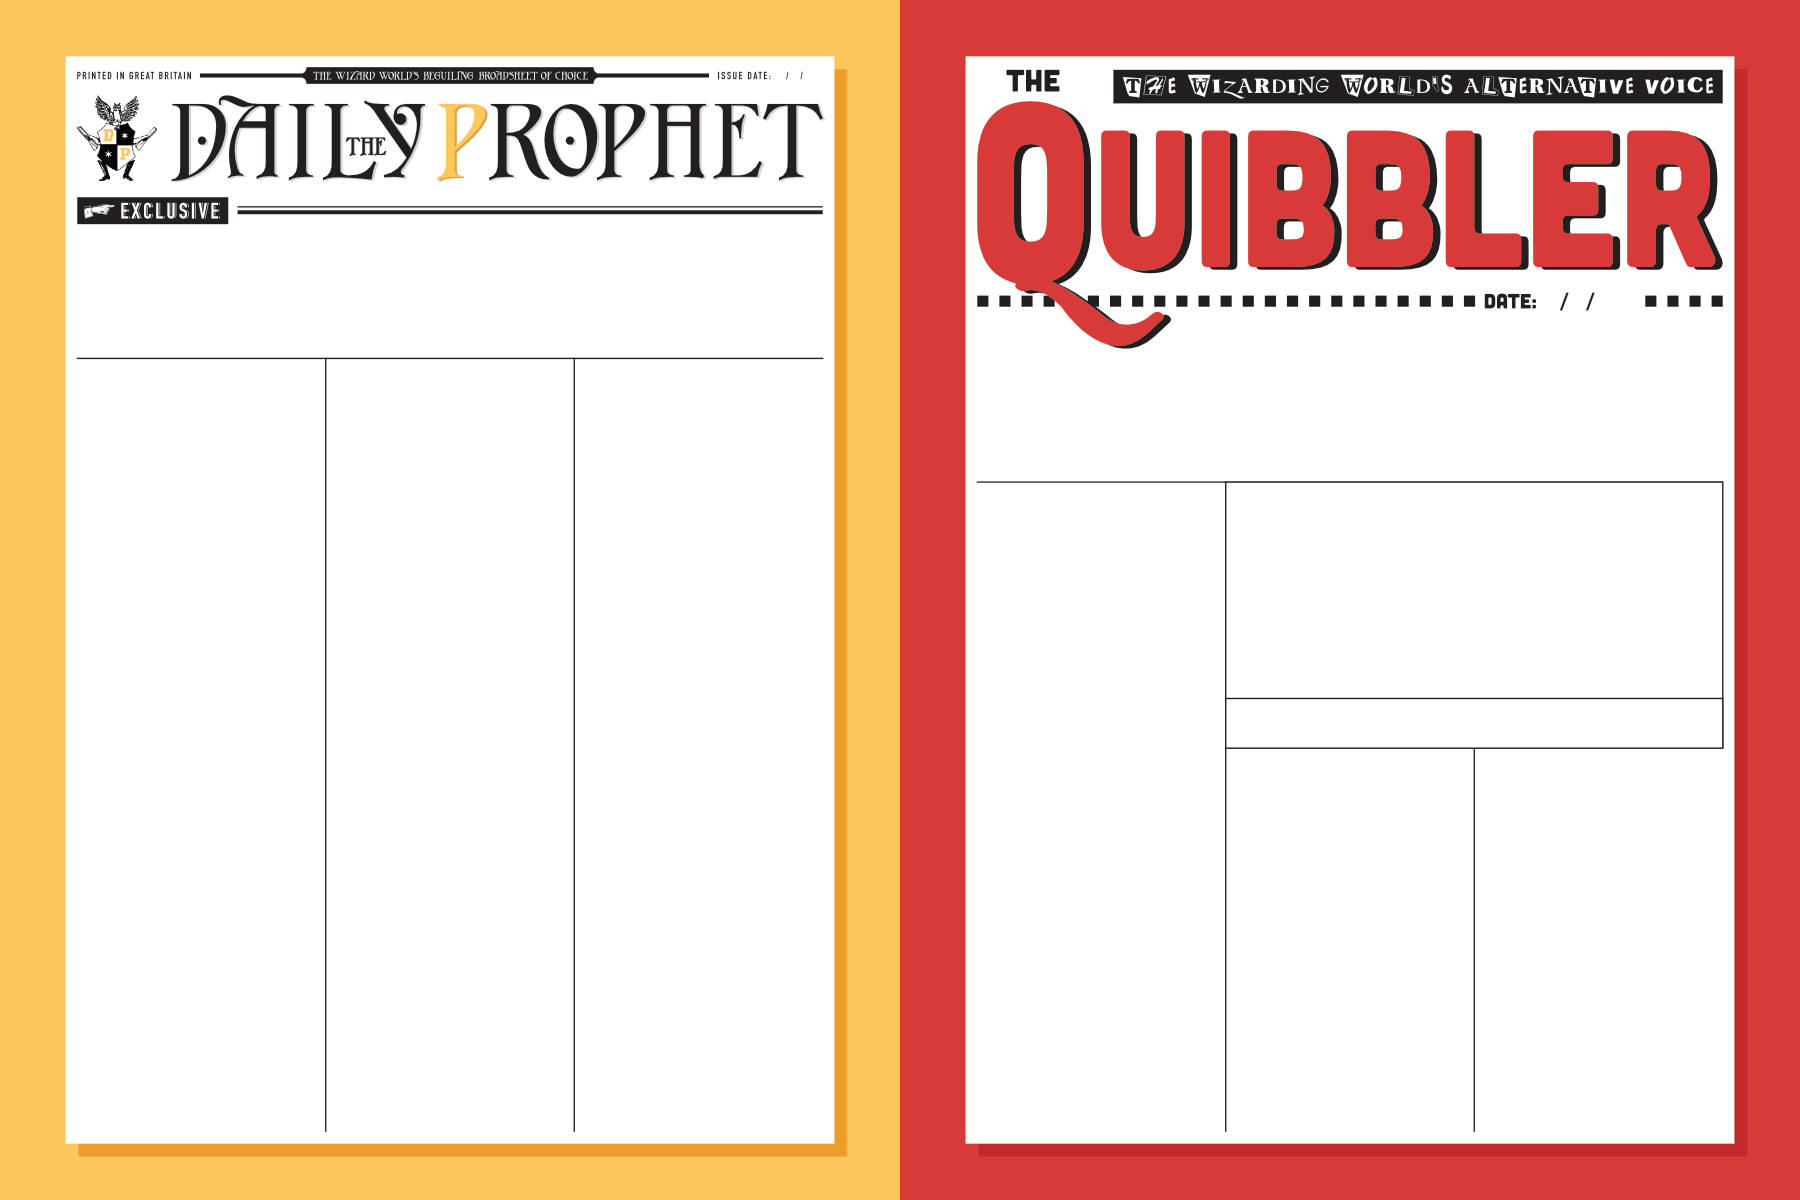 image relating to Printable Newspaper Template titled Harry Potter Newspaper Templates - PAPERZIP